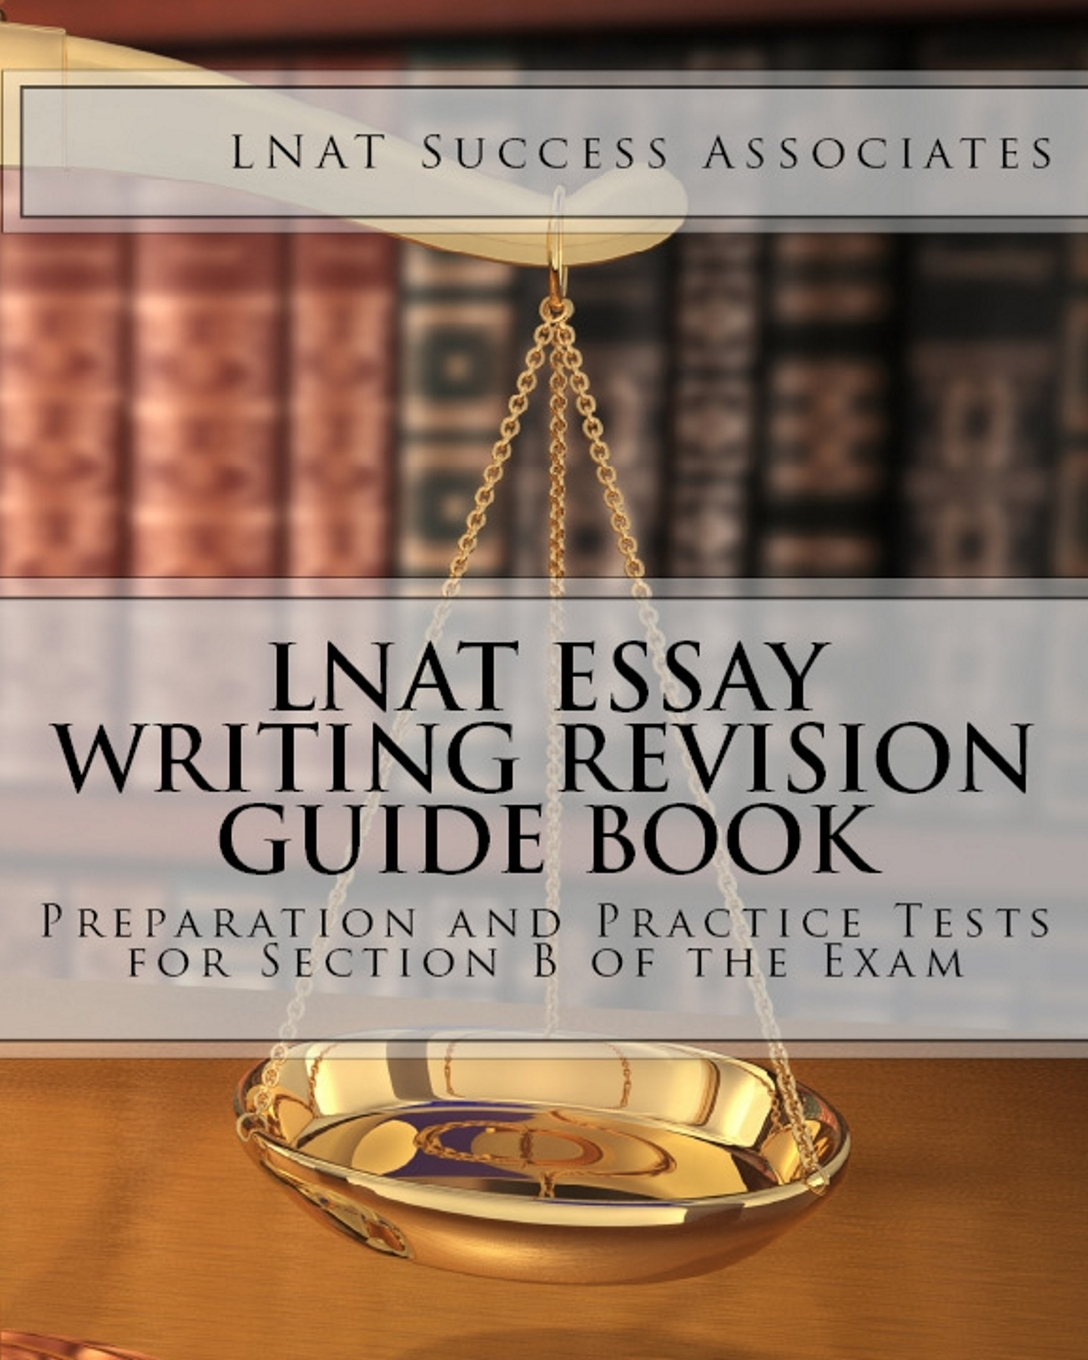 LNAT Success Associates LNAT Essay Writing Revision Guide Book. Preparation and Practice Tests for Section B of the Exam